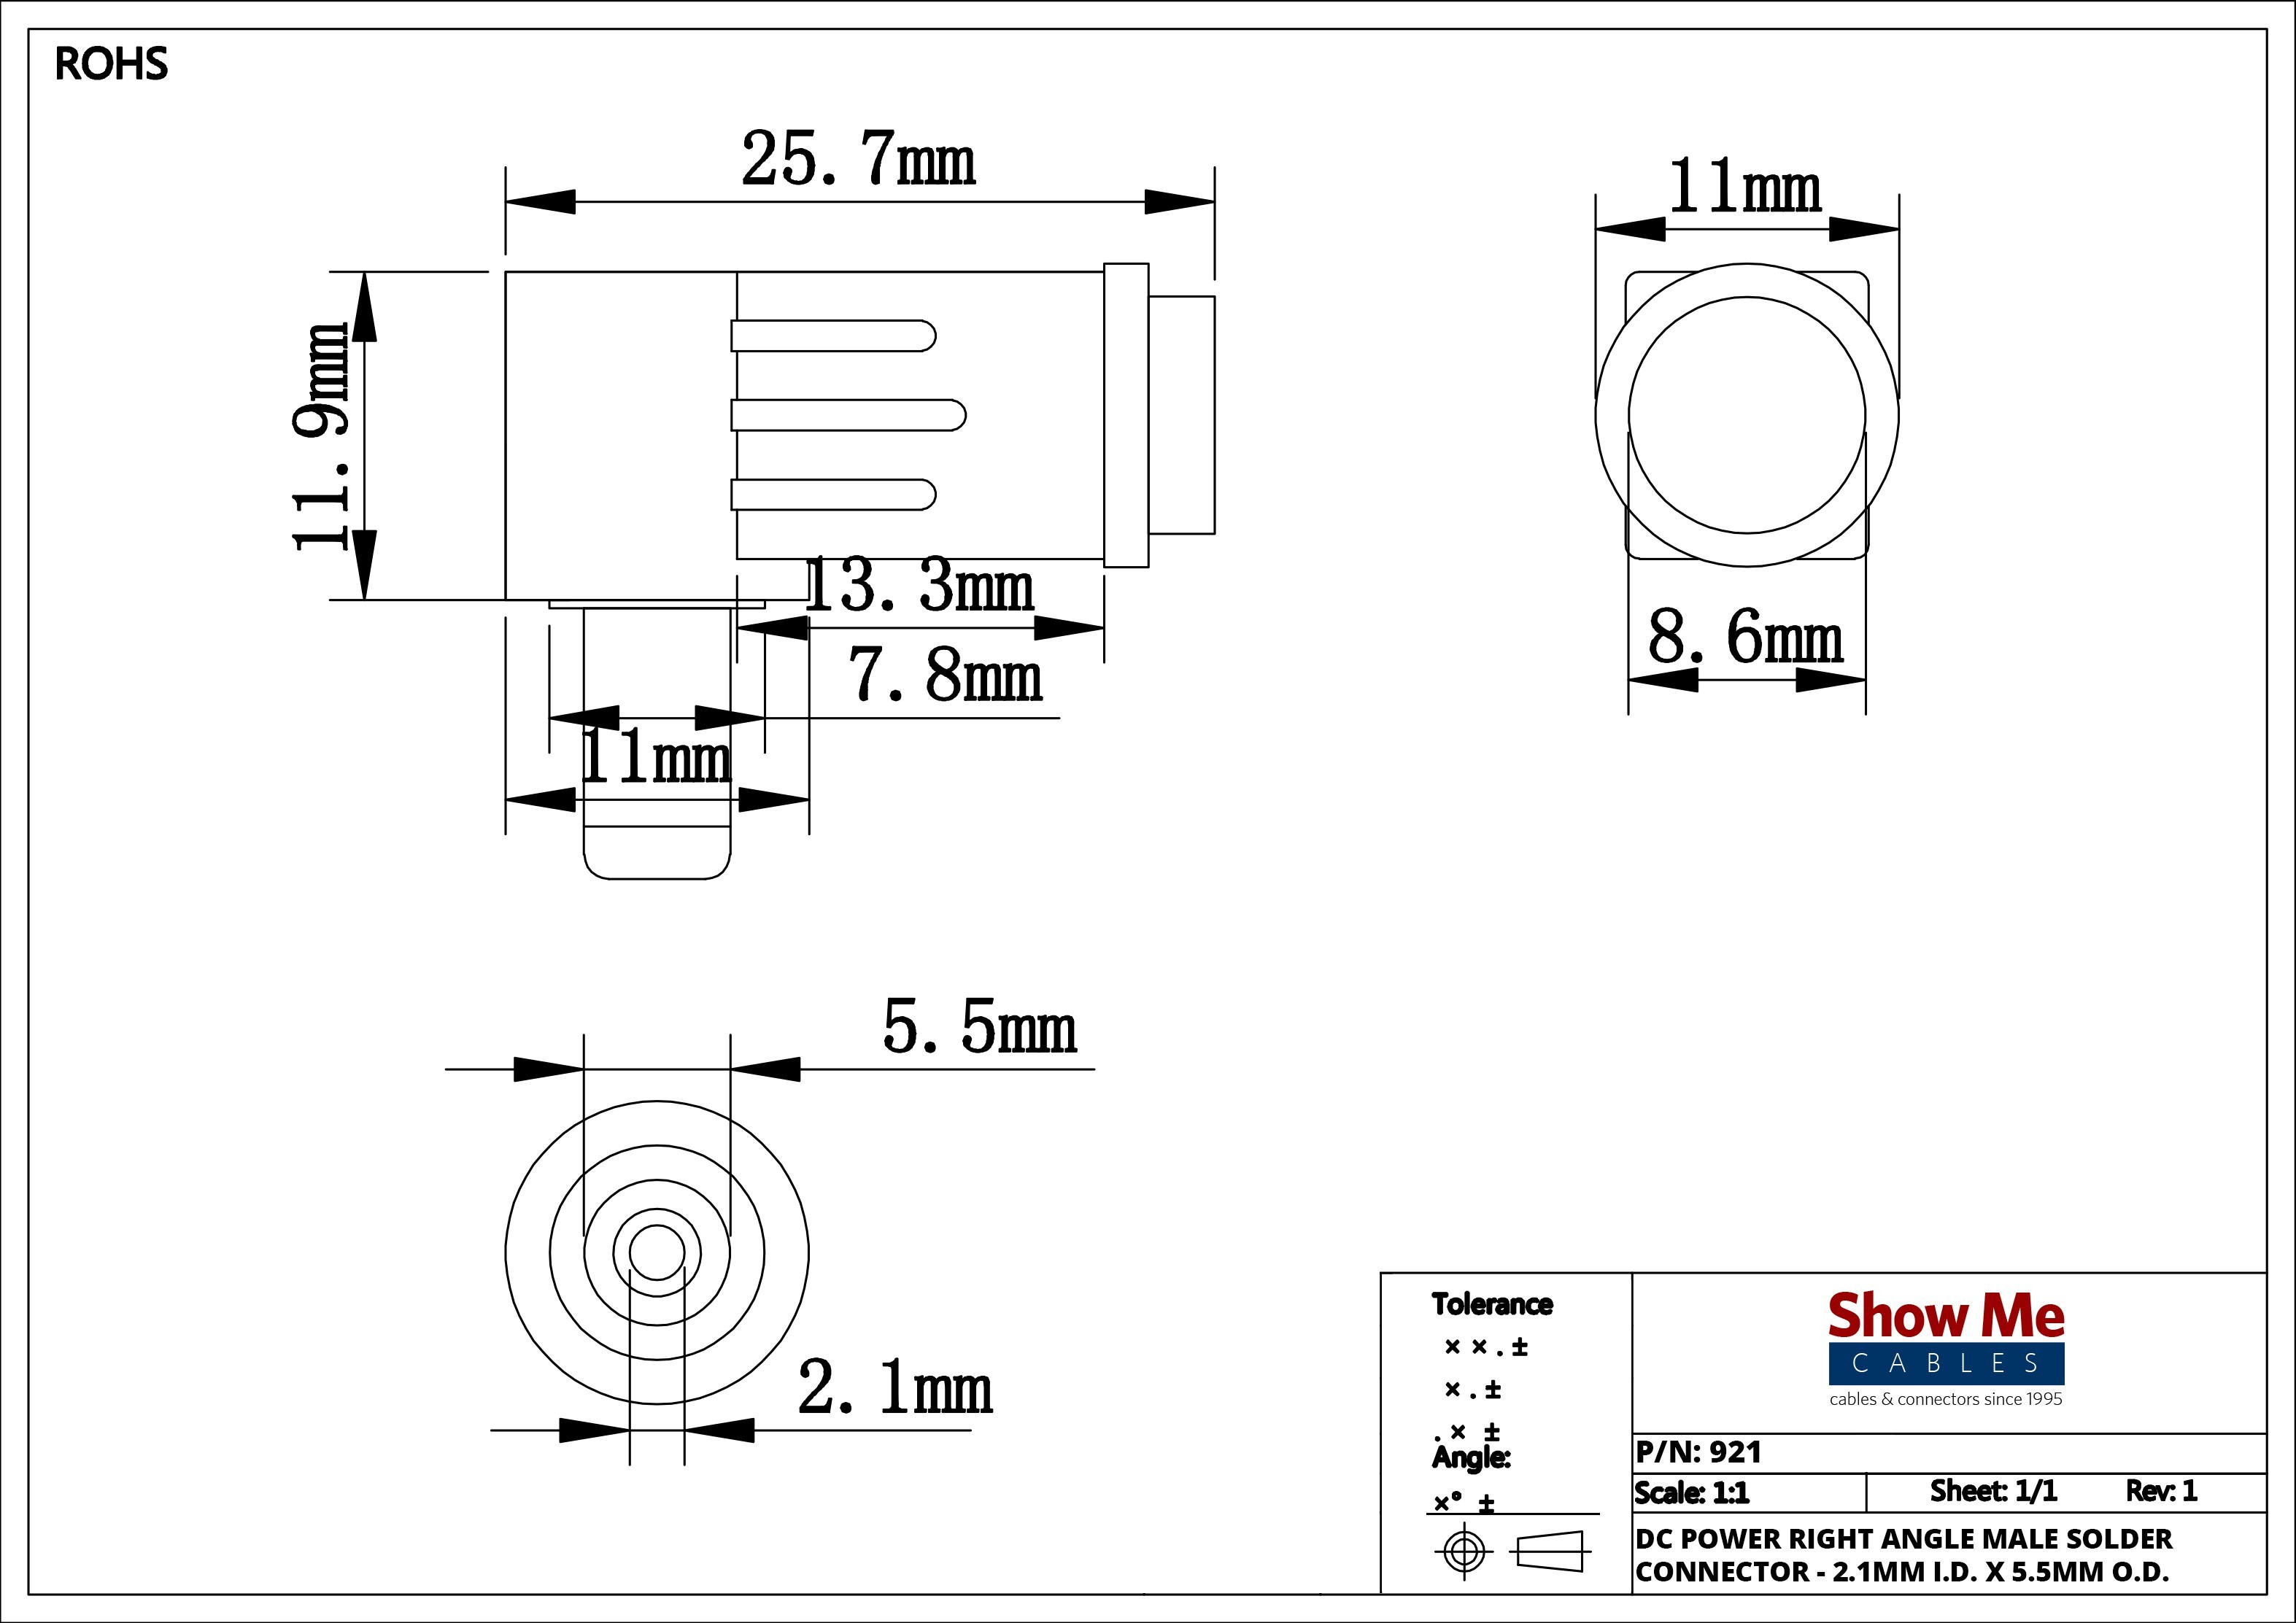 Whole House Audio Wiring Diagram 3 5 Mm Stereo Jack Wiring Diagram Elegant 2 5mm Id 5 5mm Od Power Of Whole House Audio Wiring Diagram